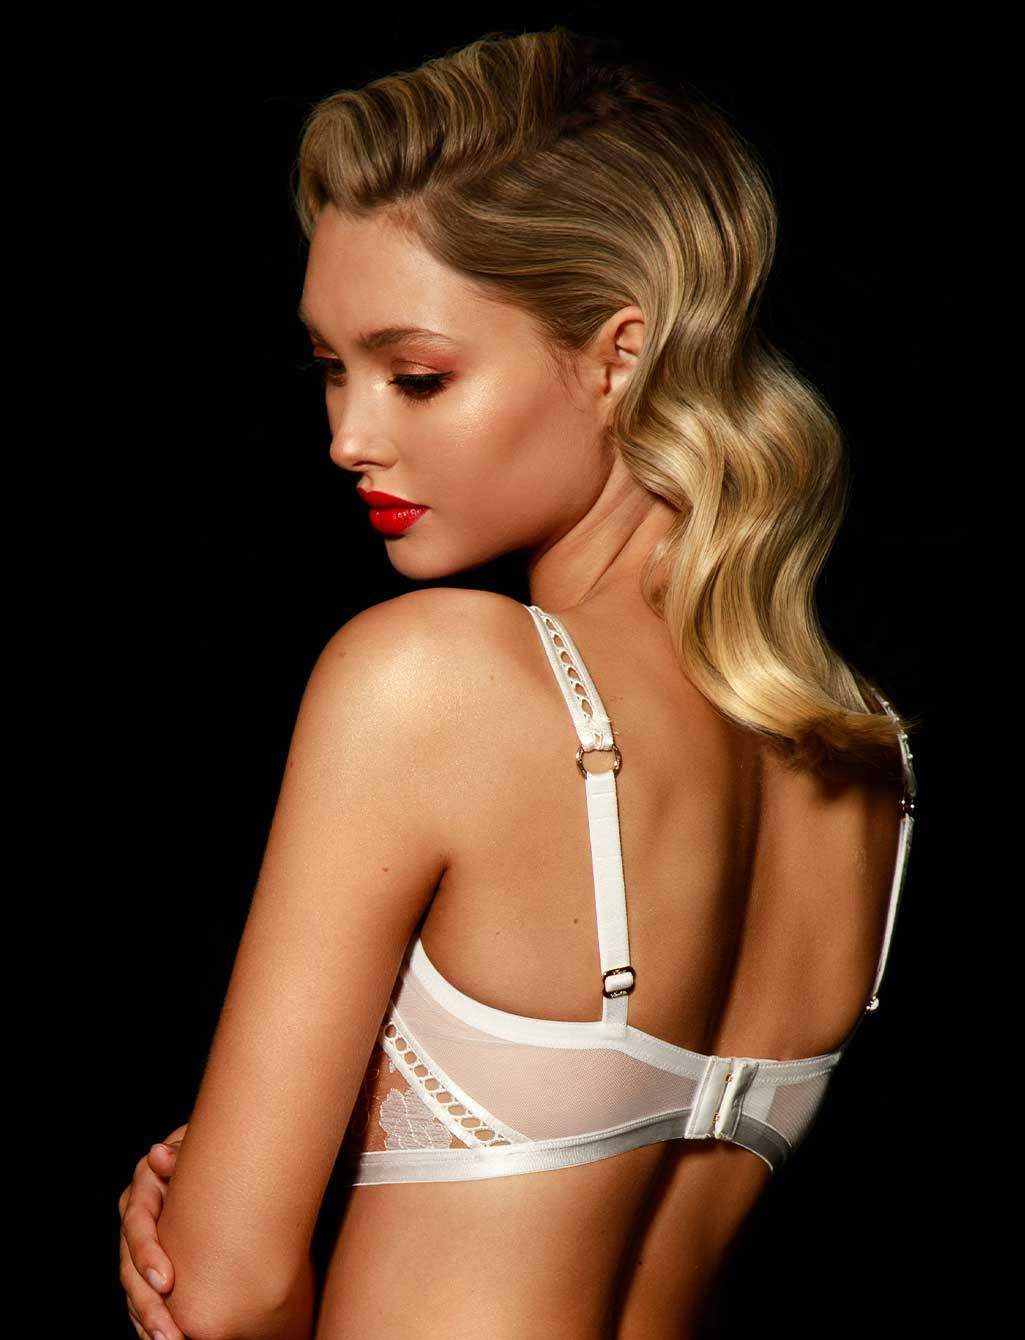 Molly Lace White Ivory Bridal Lingerie Set | Shop  Lingerie Honey Birdette